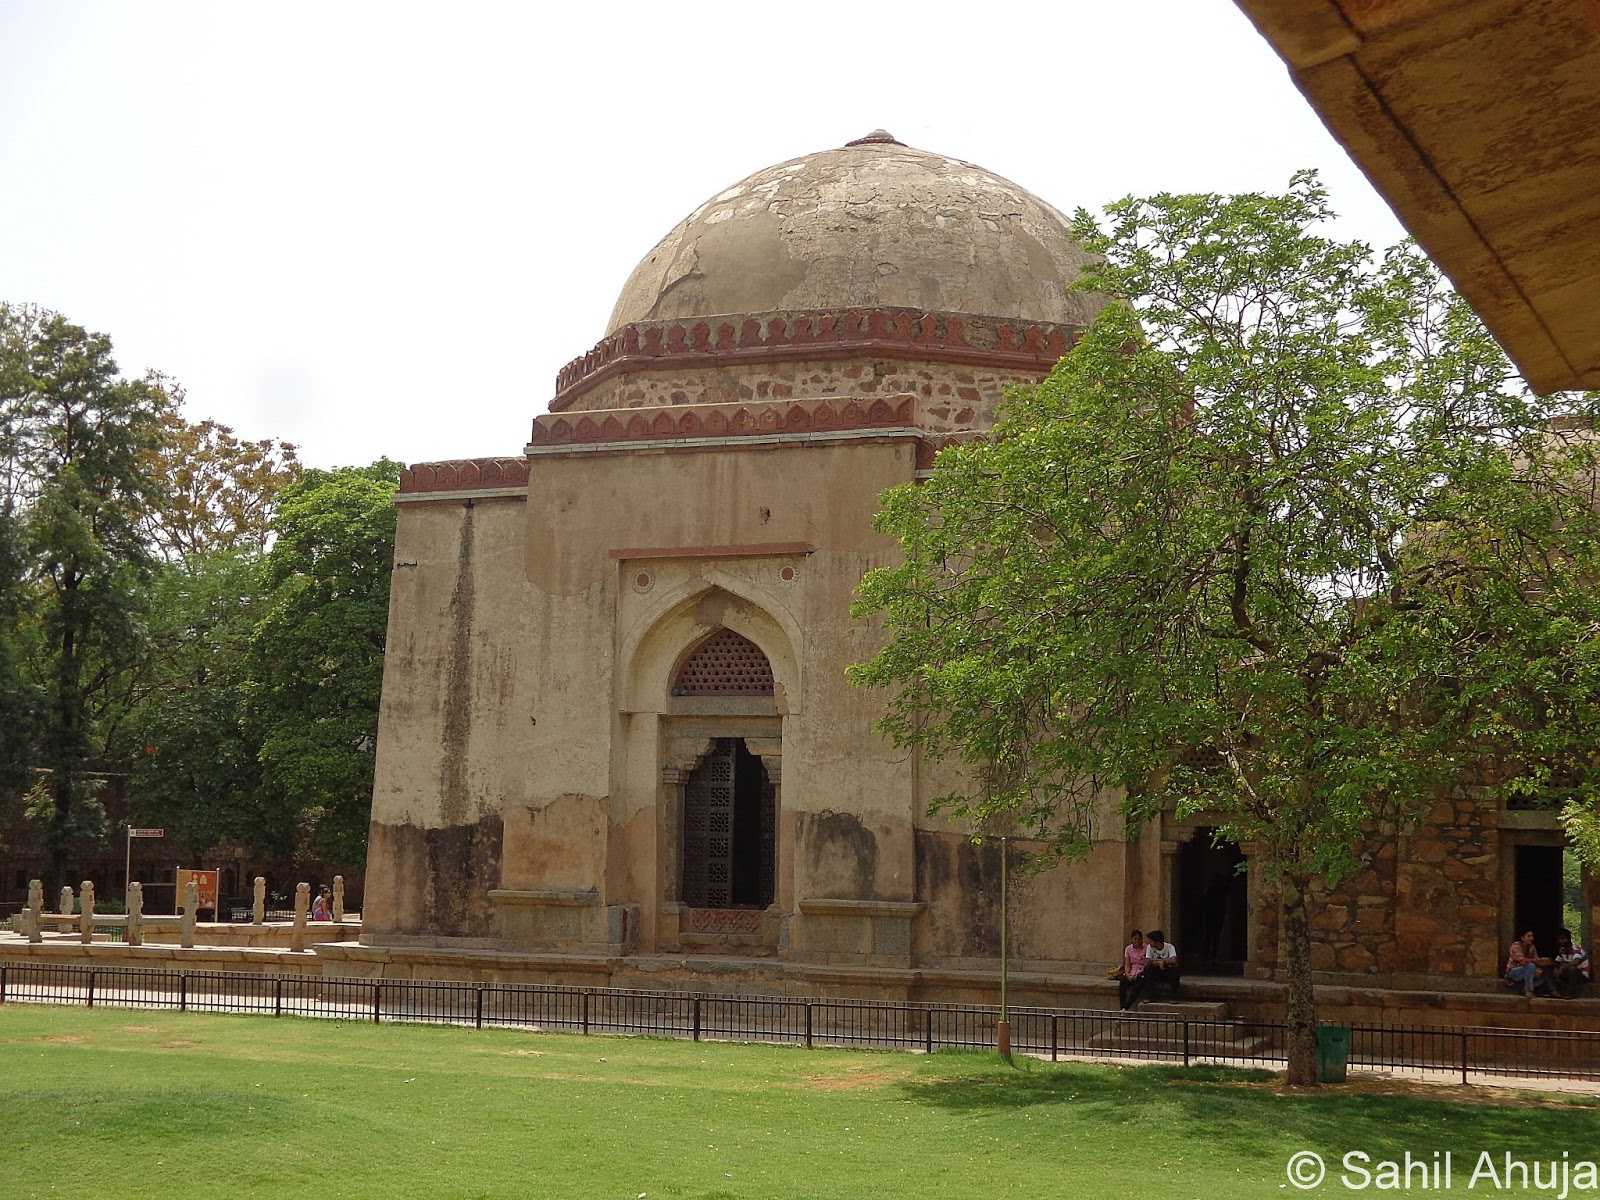 hauz khas Hauz khas, originally a residential enclave of south delhi, immersed in the greenery of its deer park, has morphed into a great place to feel the pulse of india's creative scene.